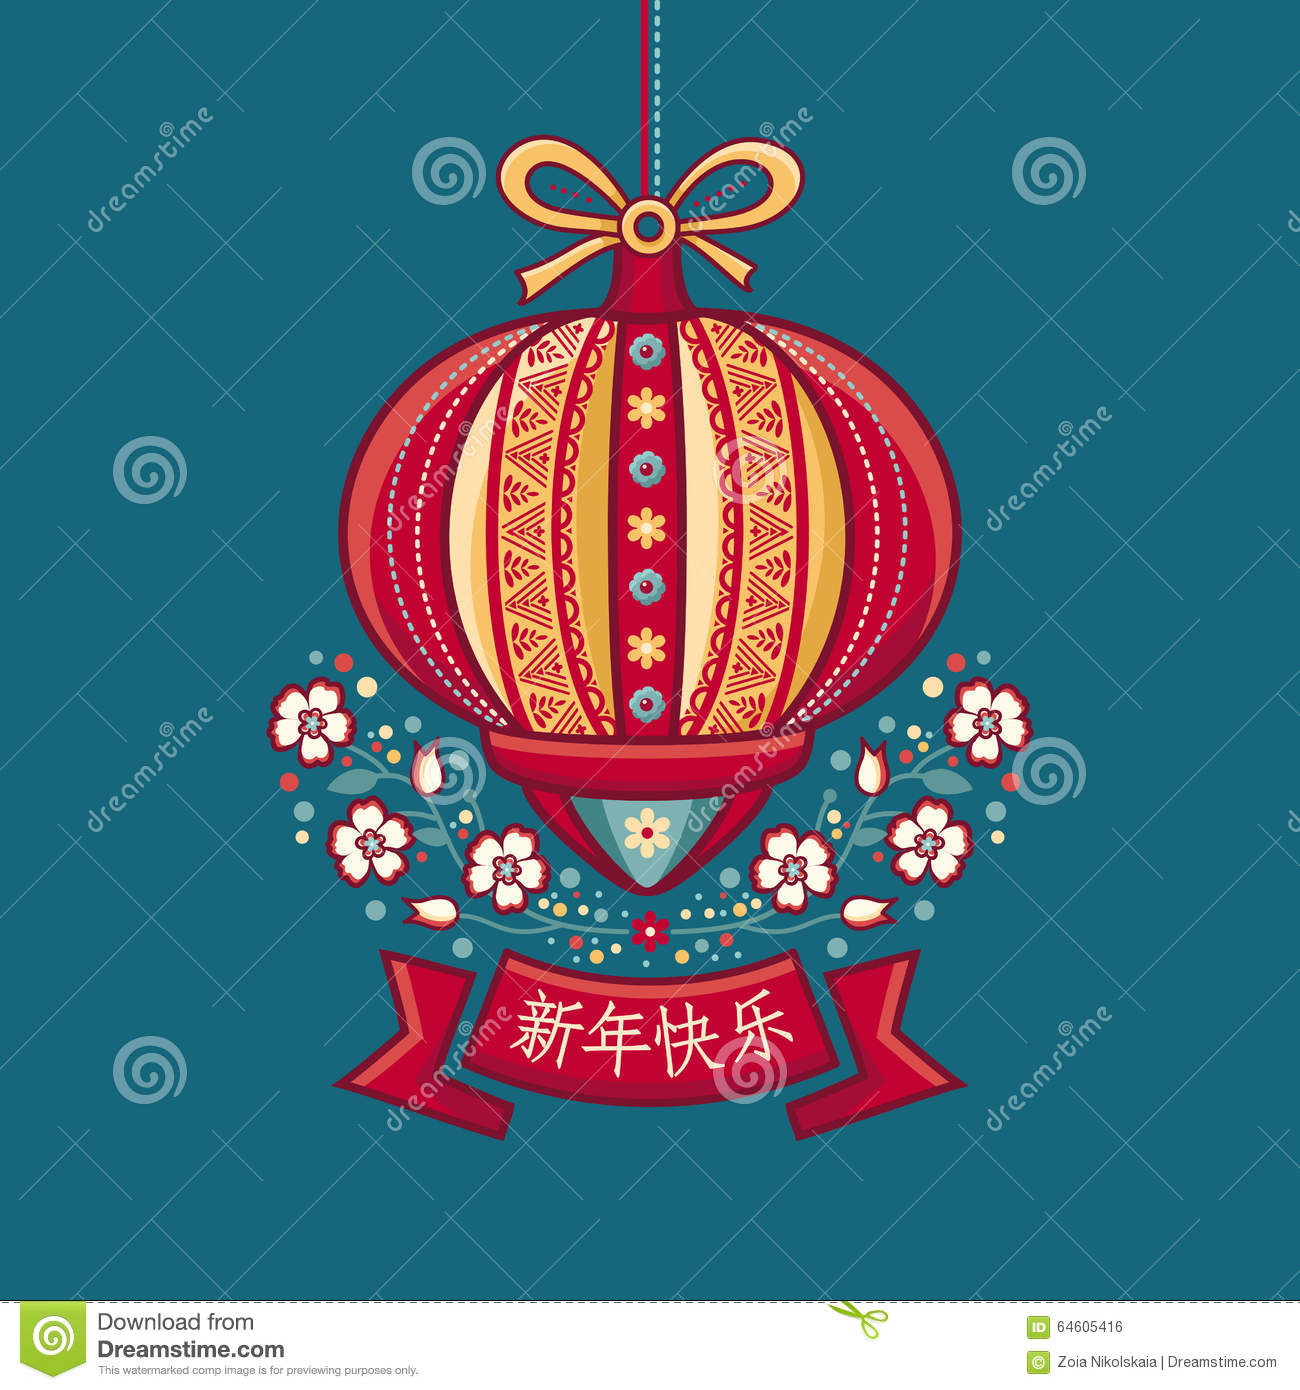 Lunar New Year Greeting Card Stock Vector Illustration Of